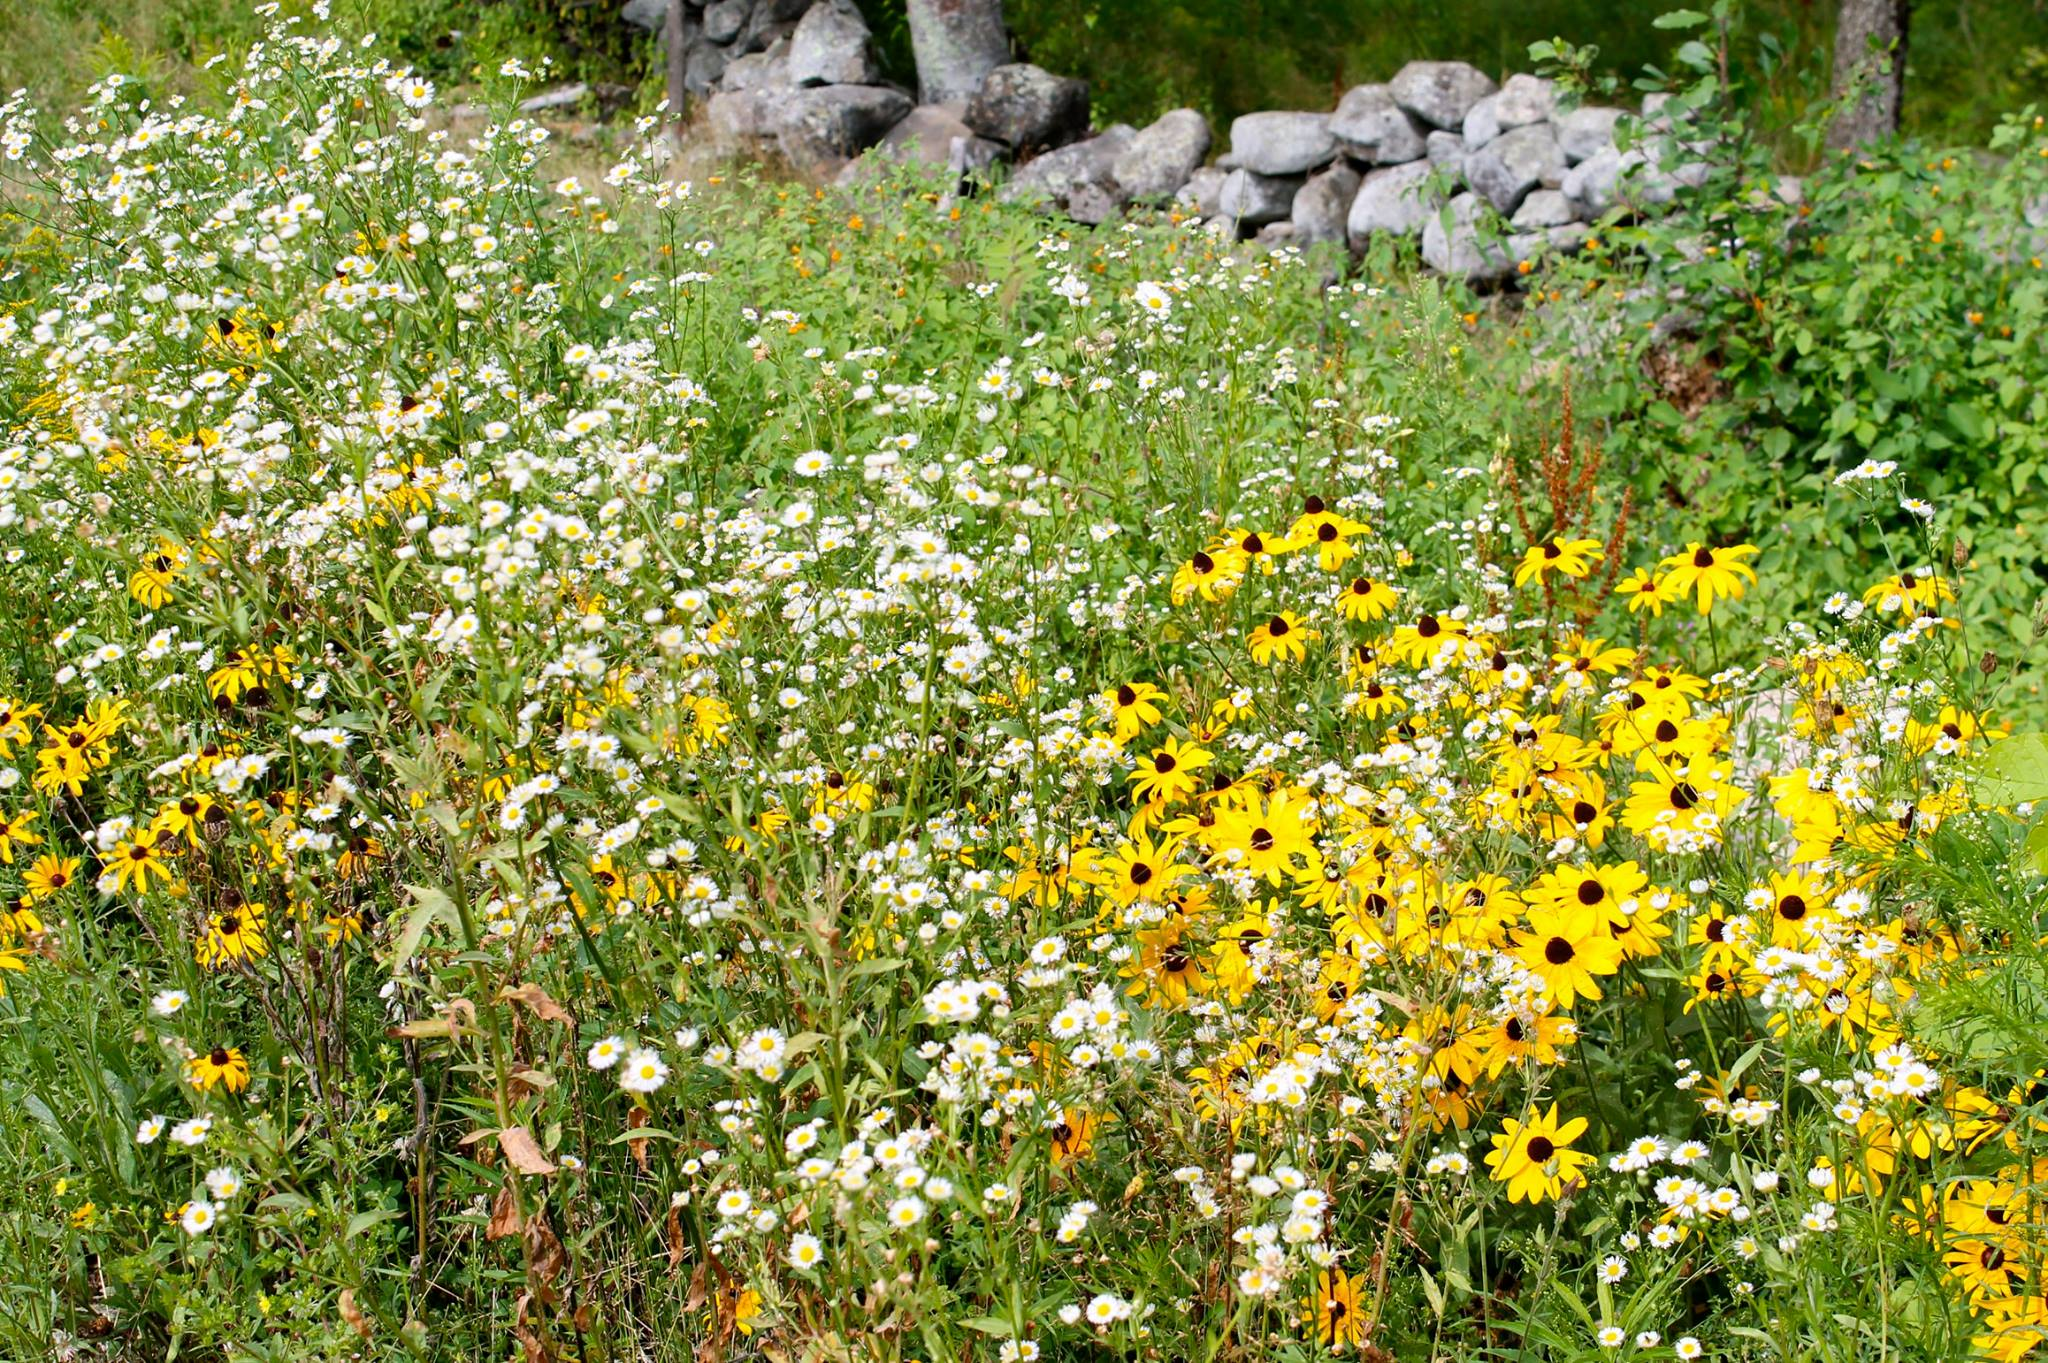 Wild flowers naturally decorate the fields in spring.